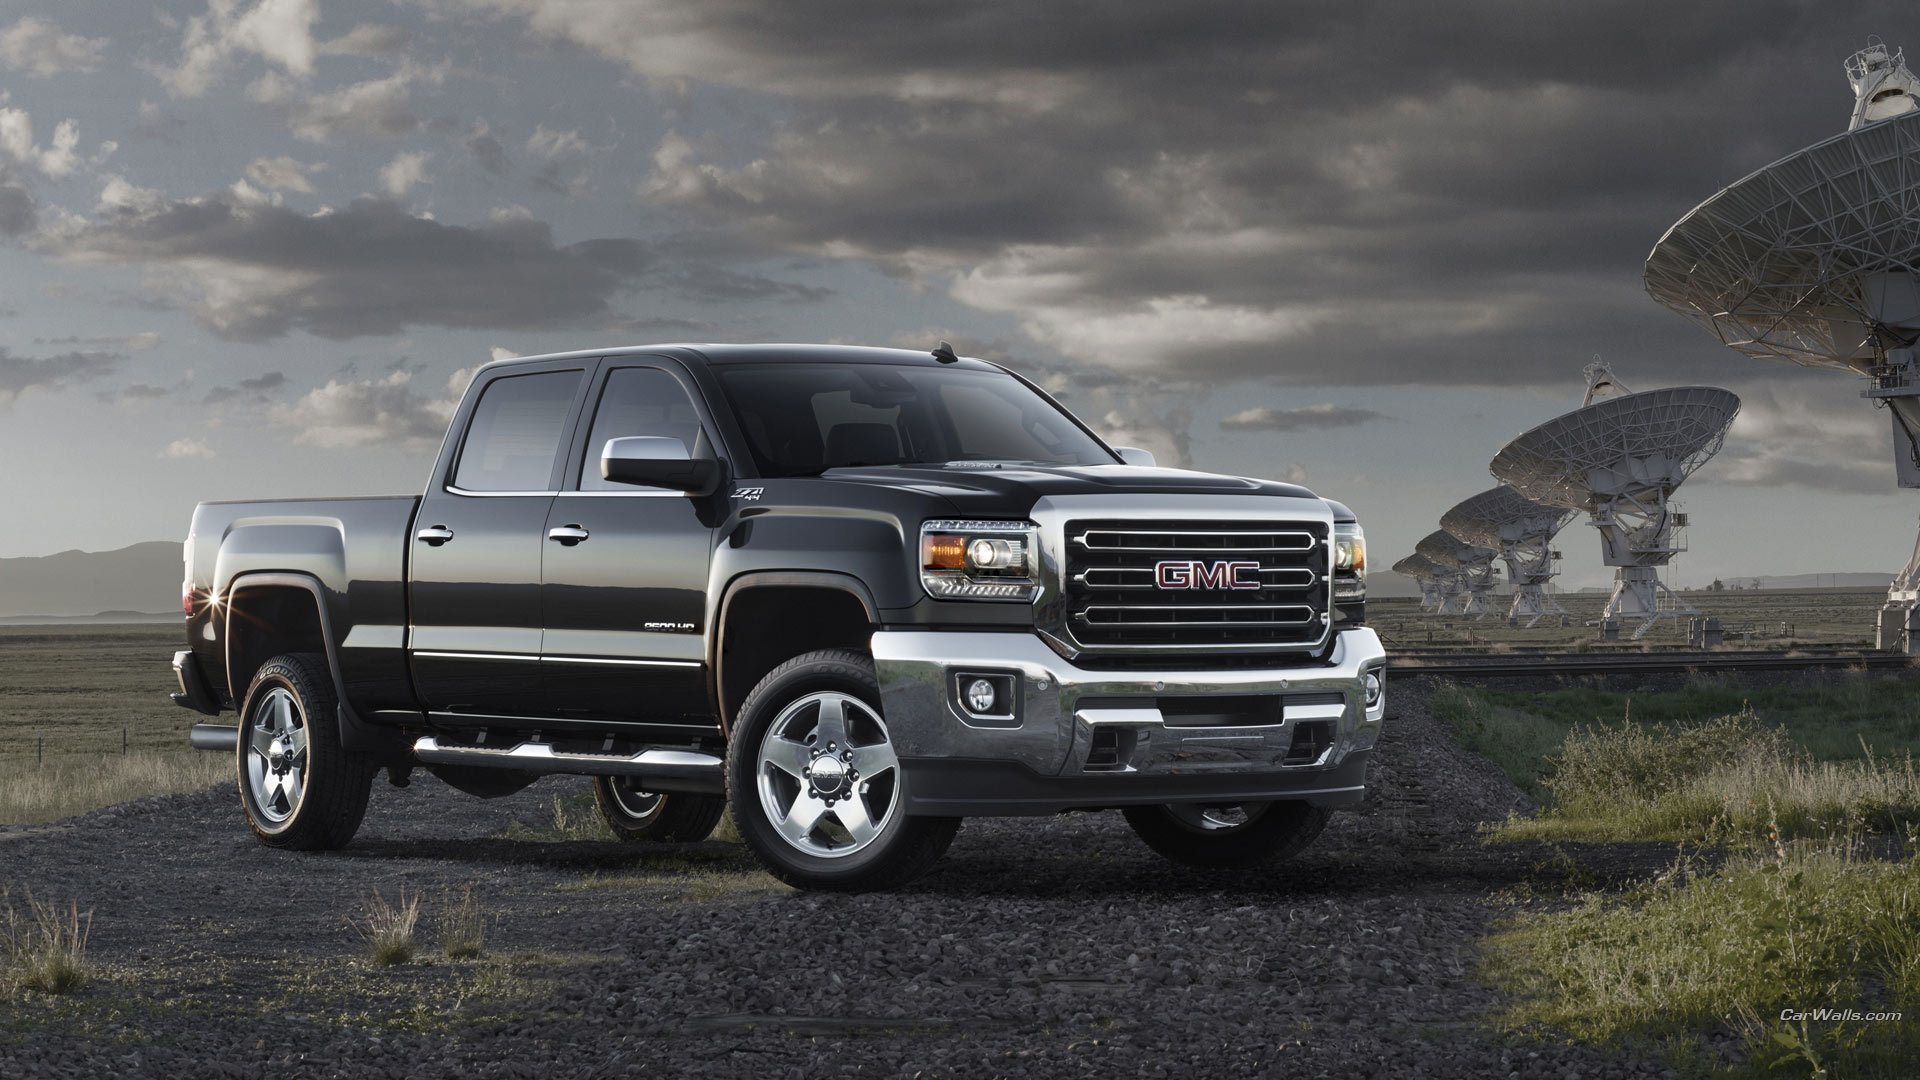 Latest 2015 Gmc Sierra Hd Full Hd Wallpaper And Background Image Free Download